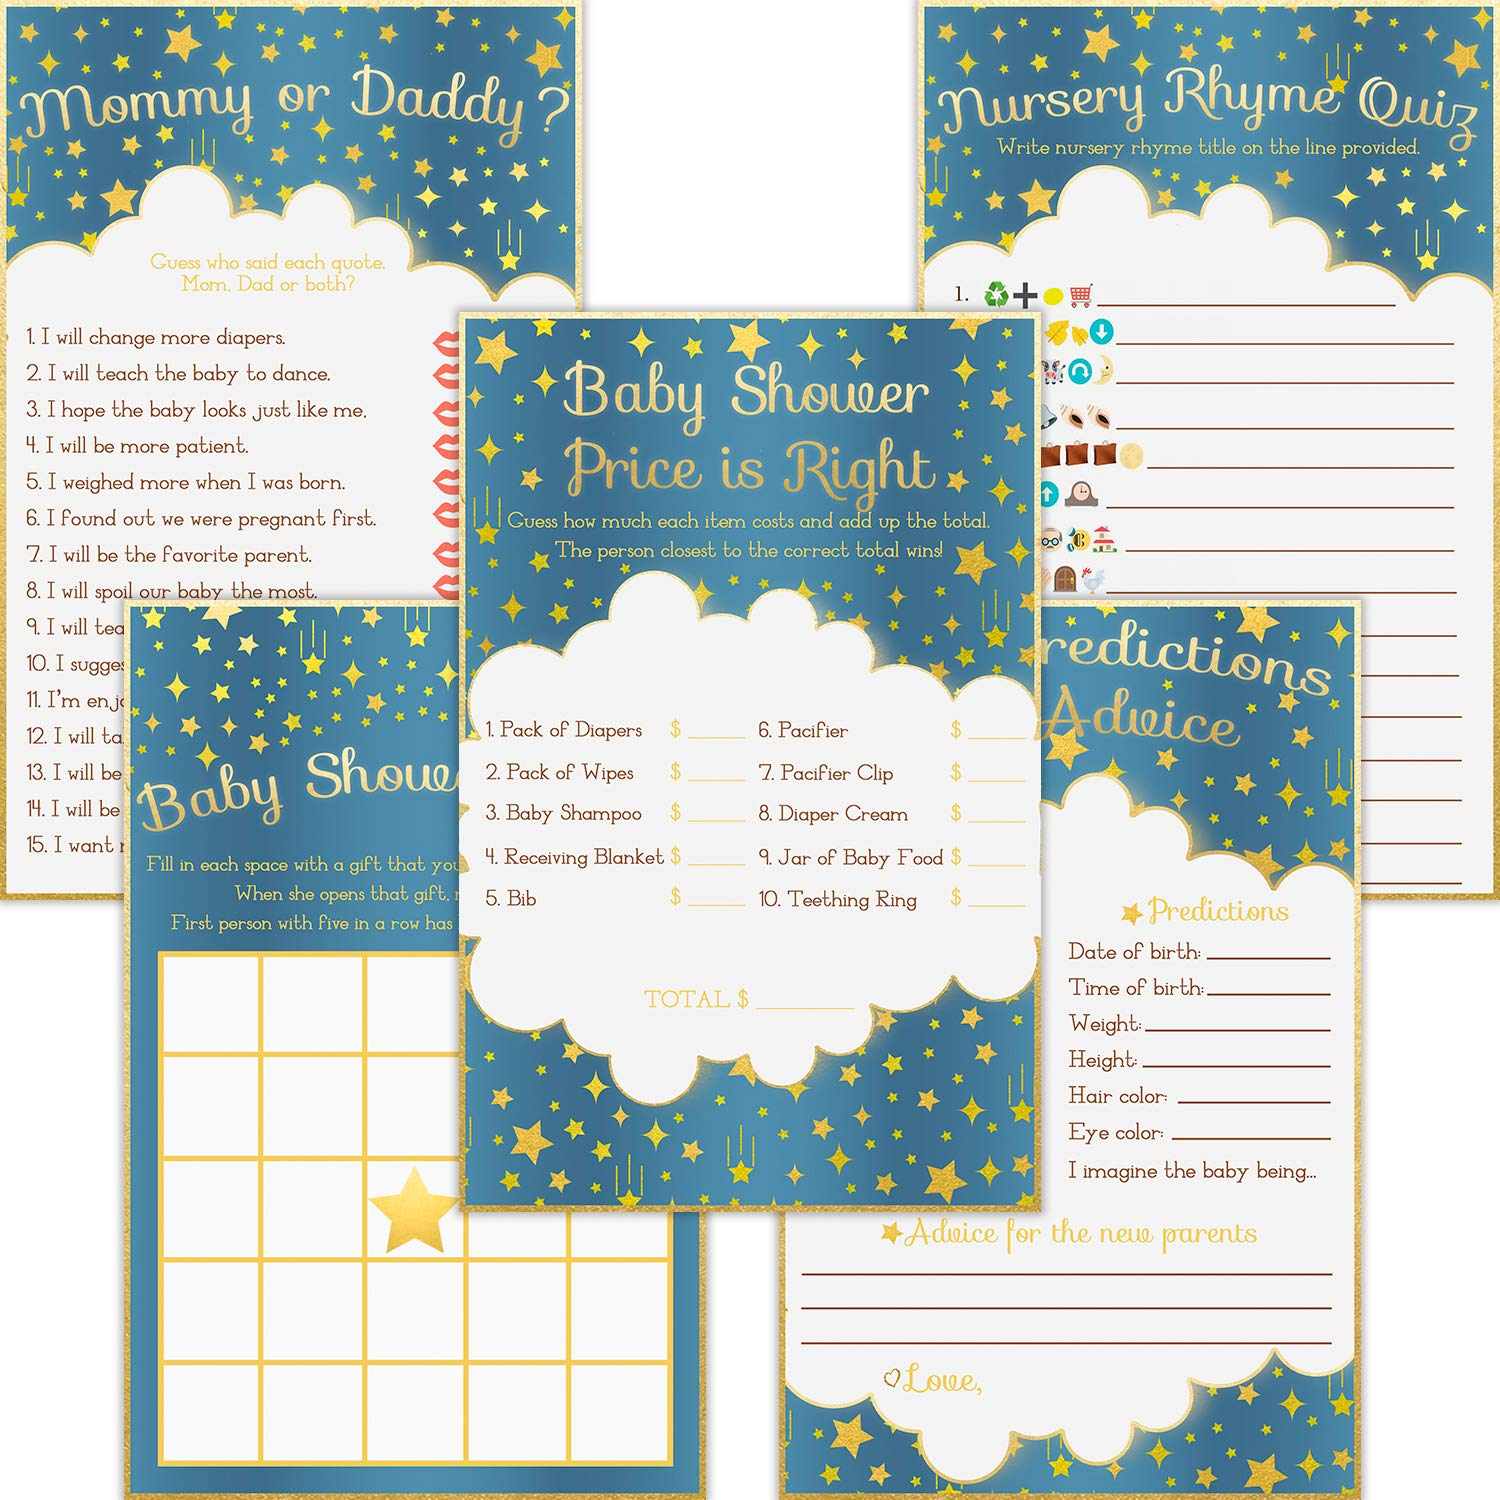 Baby Shower Games - Pack of 5 Activities (50 Each, 250 Total) - Bingo, Mommy or Daddy, Emoji, Predictions and Advice, and Price is Right